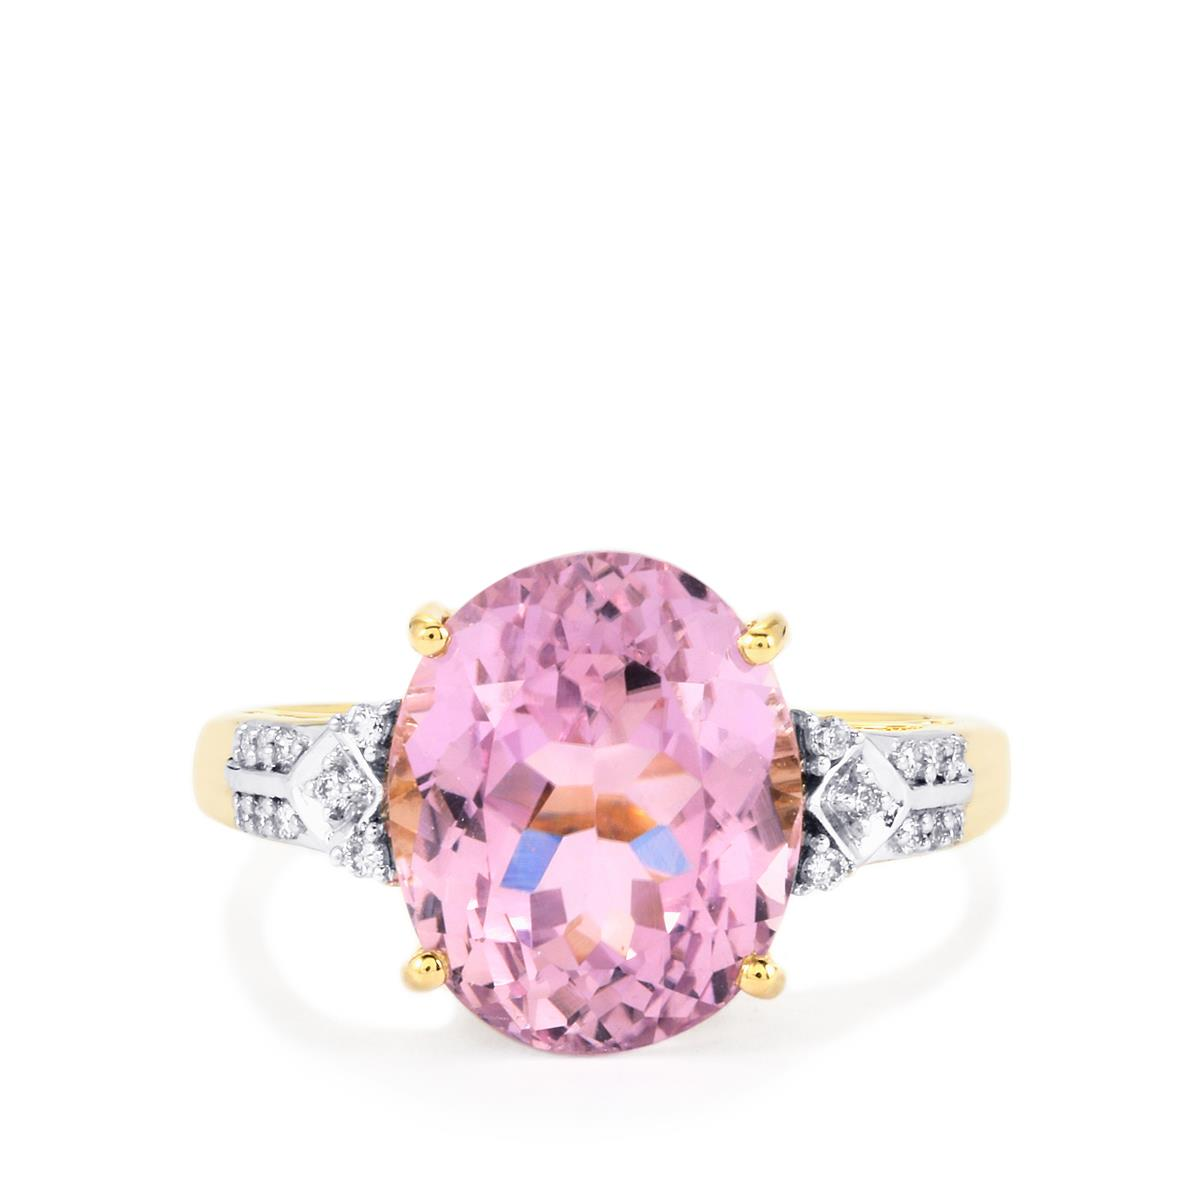 Mawi Kunzite Ring with Diamond in 14K Gold 7.34cts | ETPS47 | Gemporia